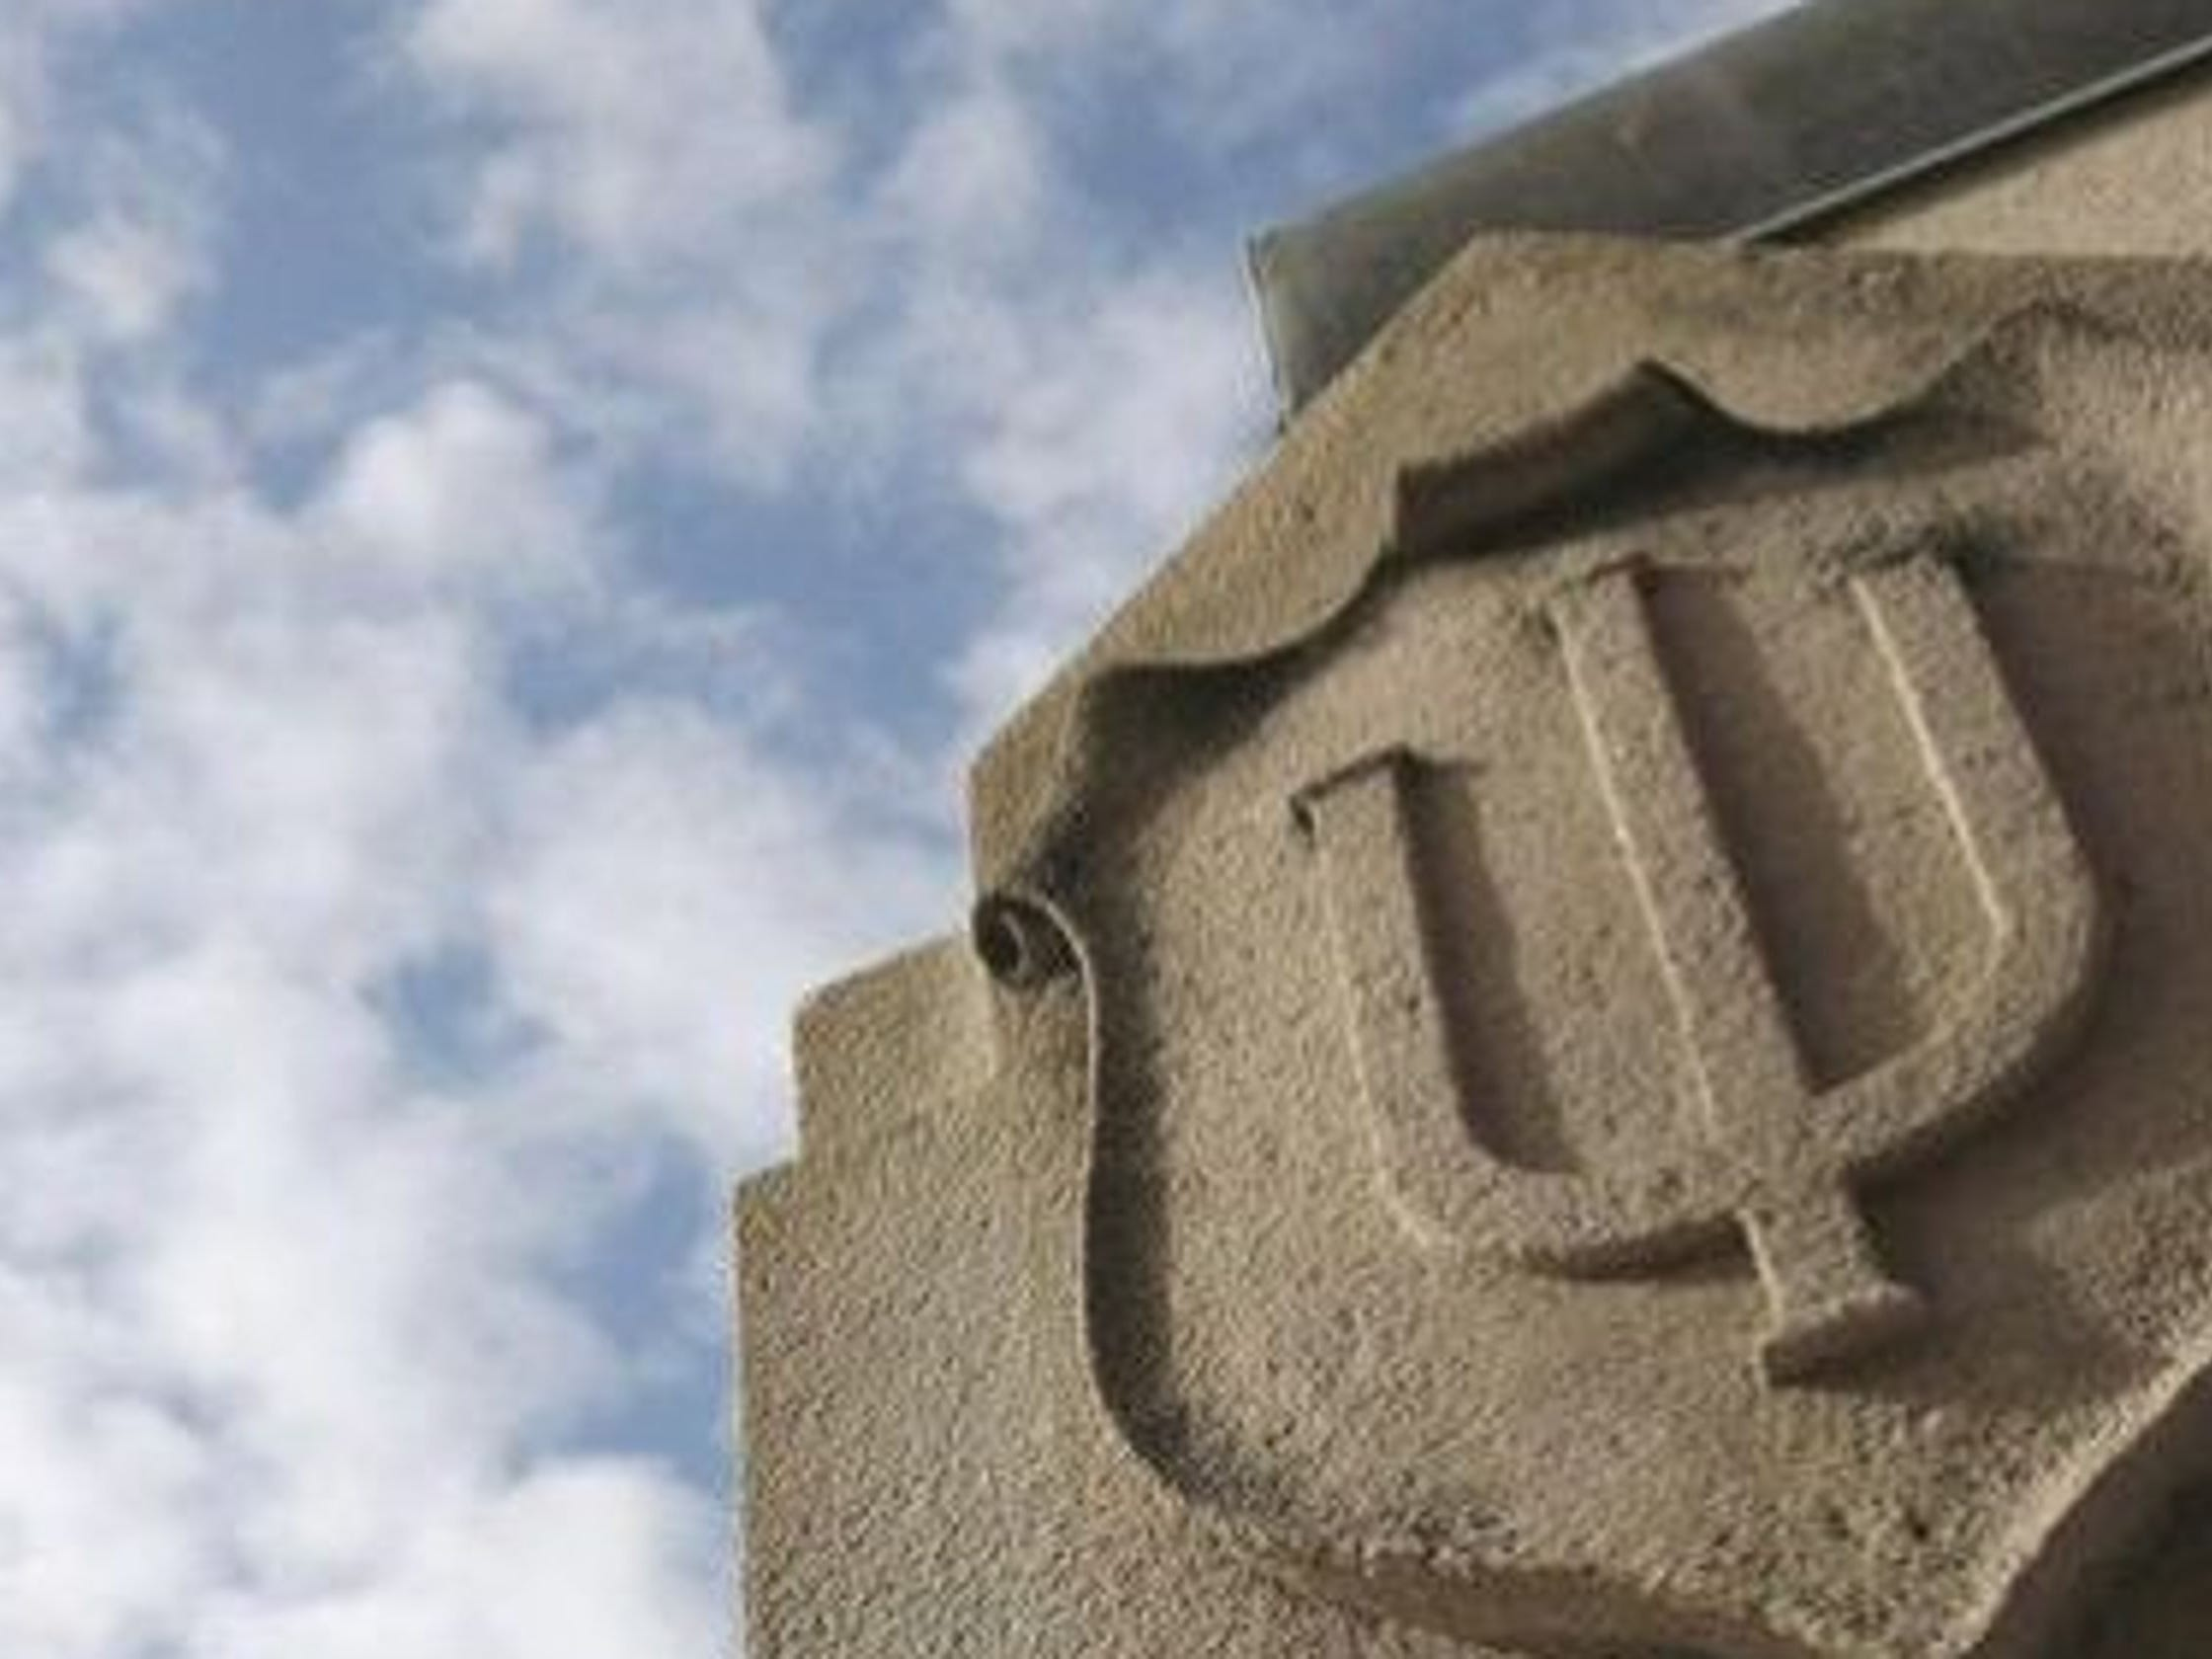 Rape, assault of student reported on Indiana University campus